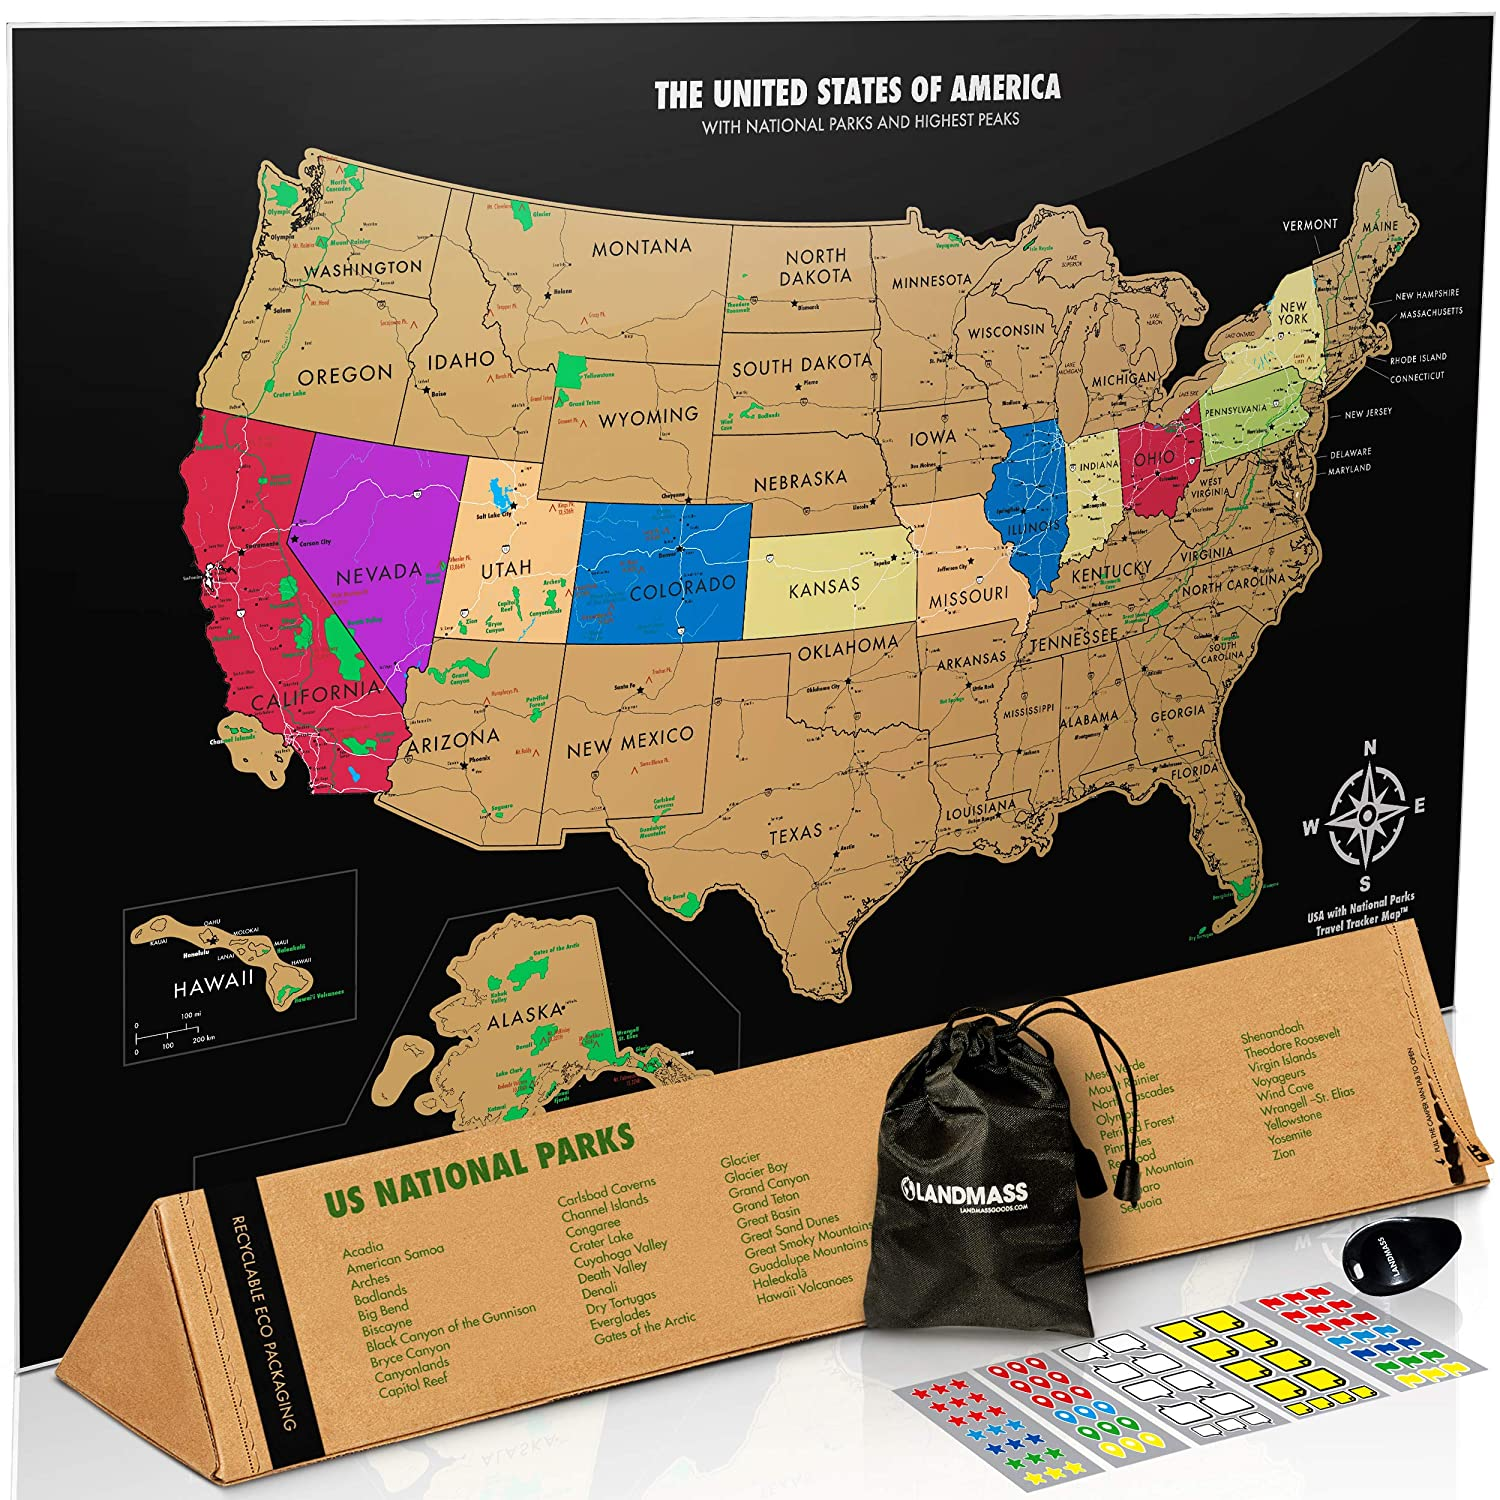 Amazon.com: Landmass 17x24 inches Scratch Off USA Map Poster with ...